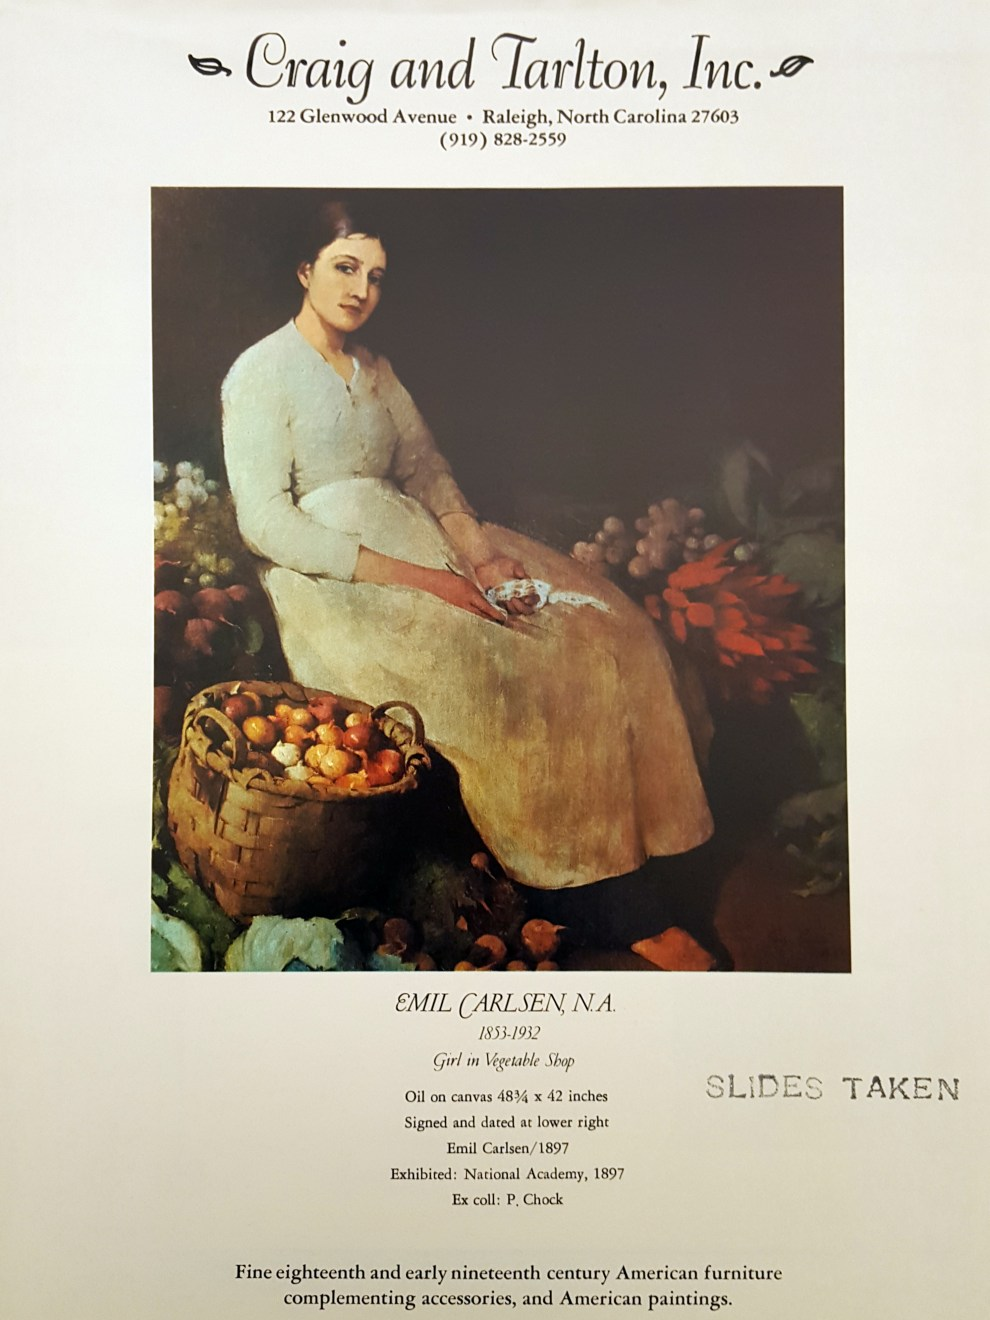 """Emil Carlsen Ad for Craig and Tarlton, Inc."", The Magazine Antiques, September 1974, p. 325, illustrated: color"